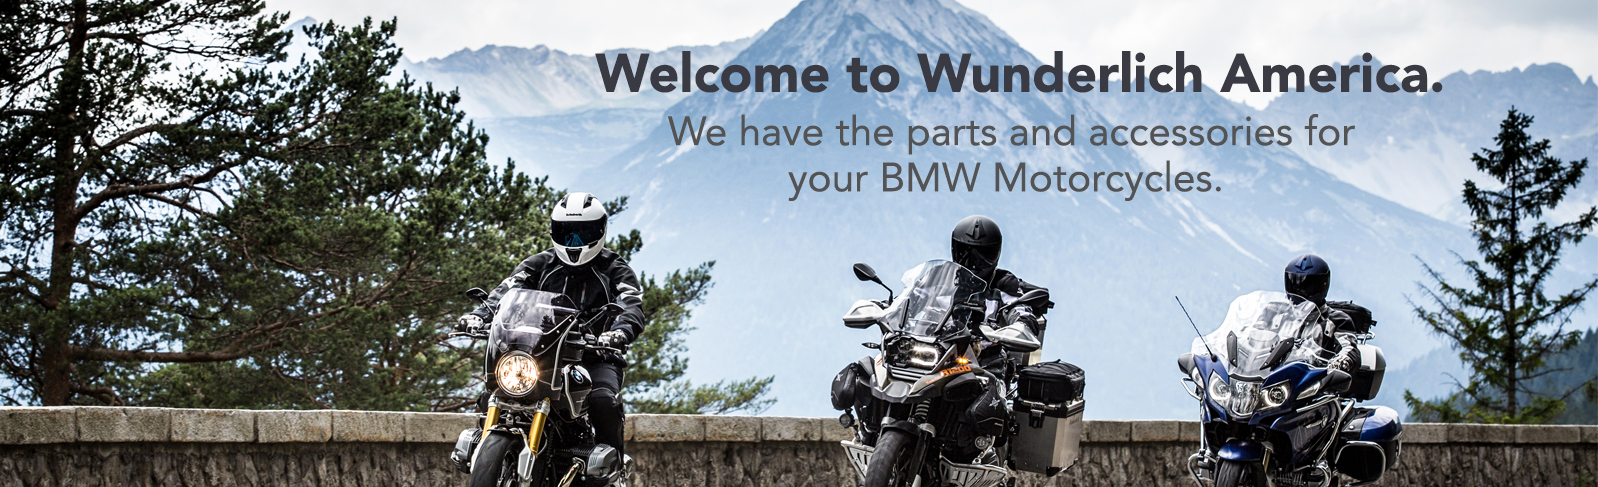 bmw motorcycle parts, bmw motorcycle accessories and tools